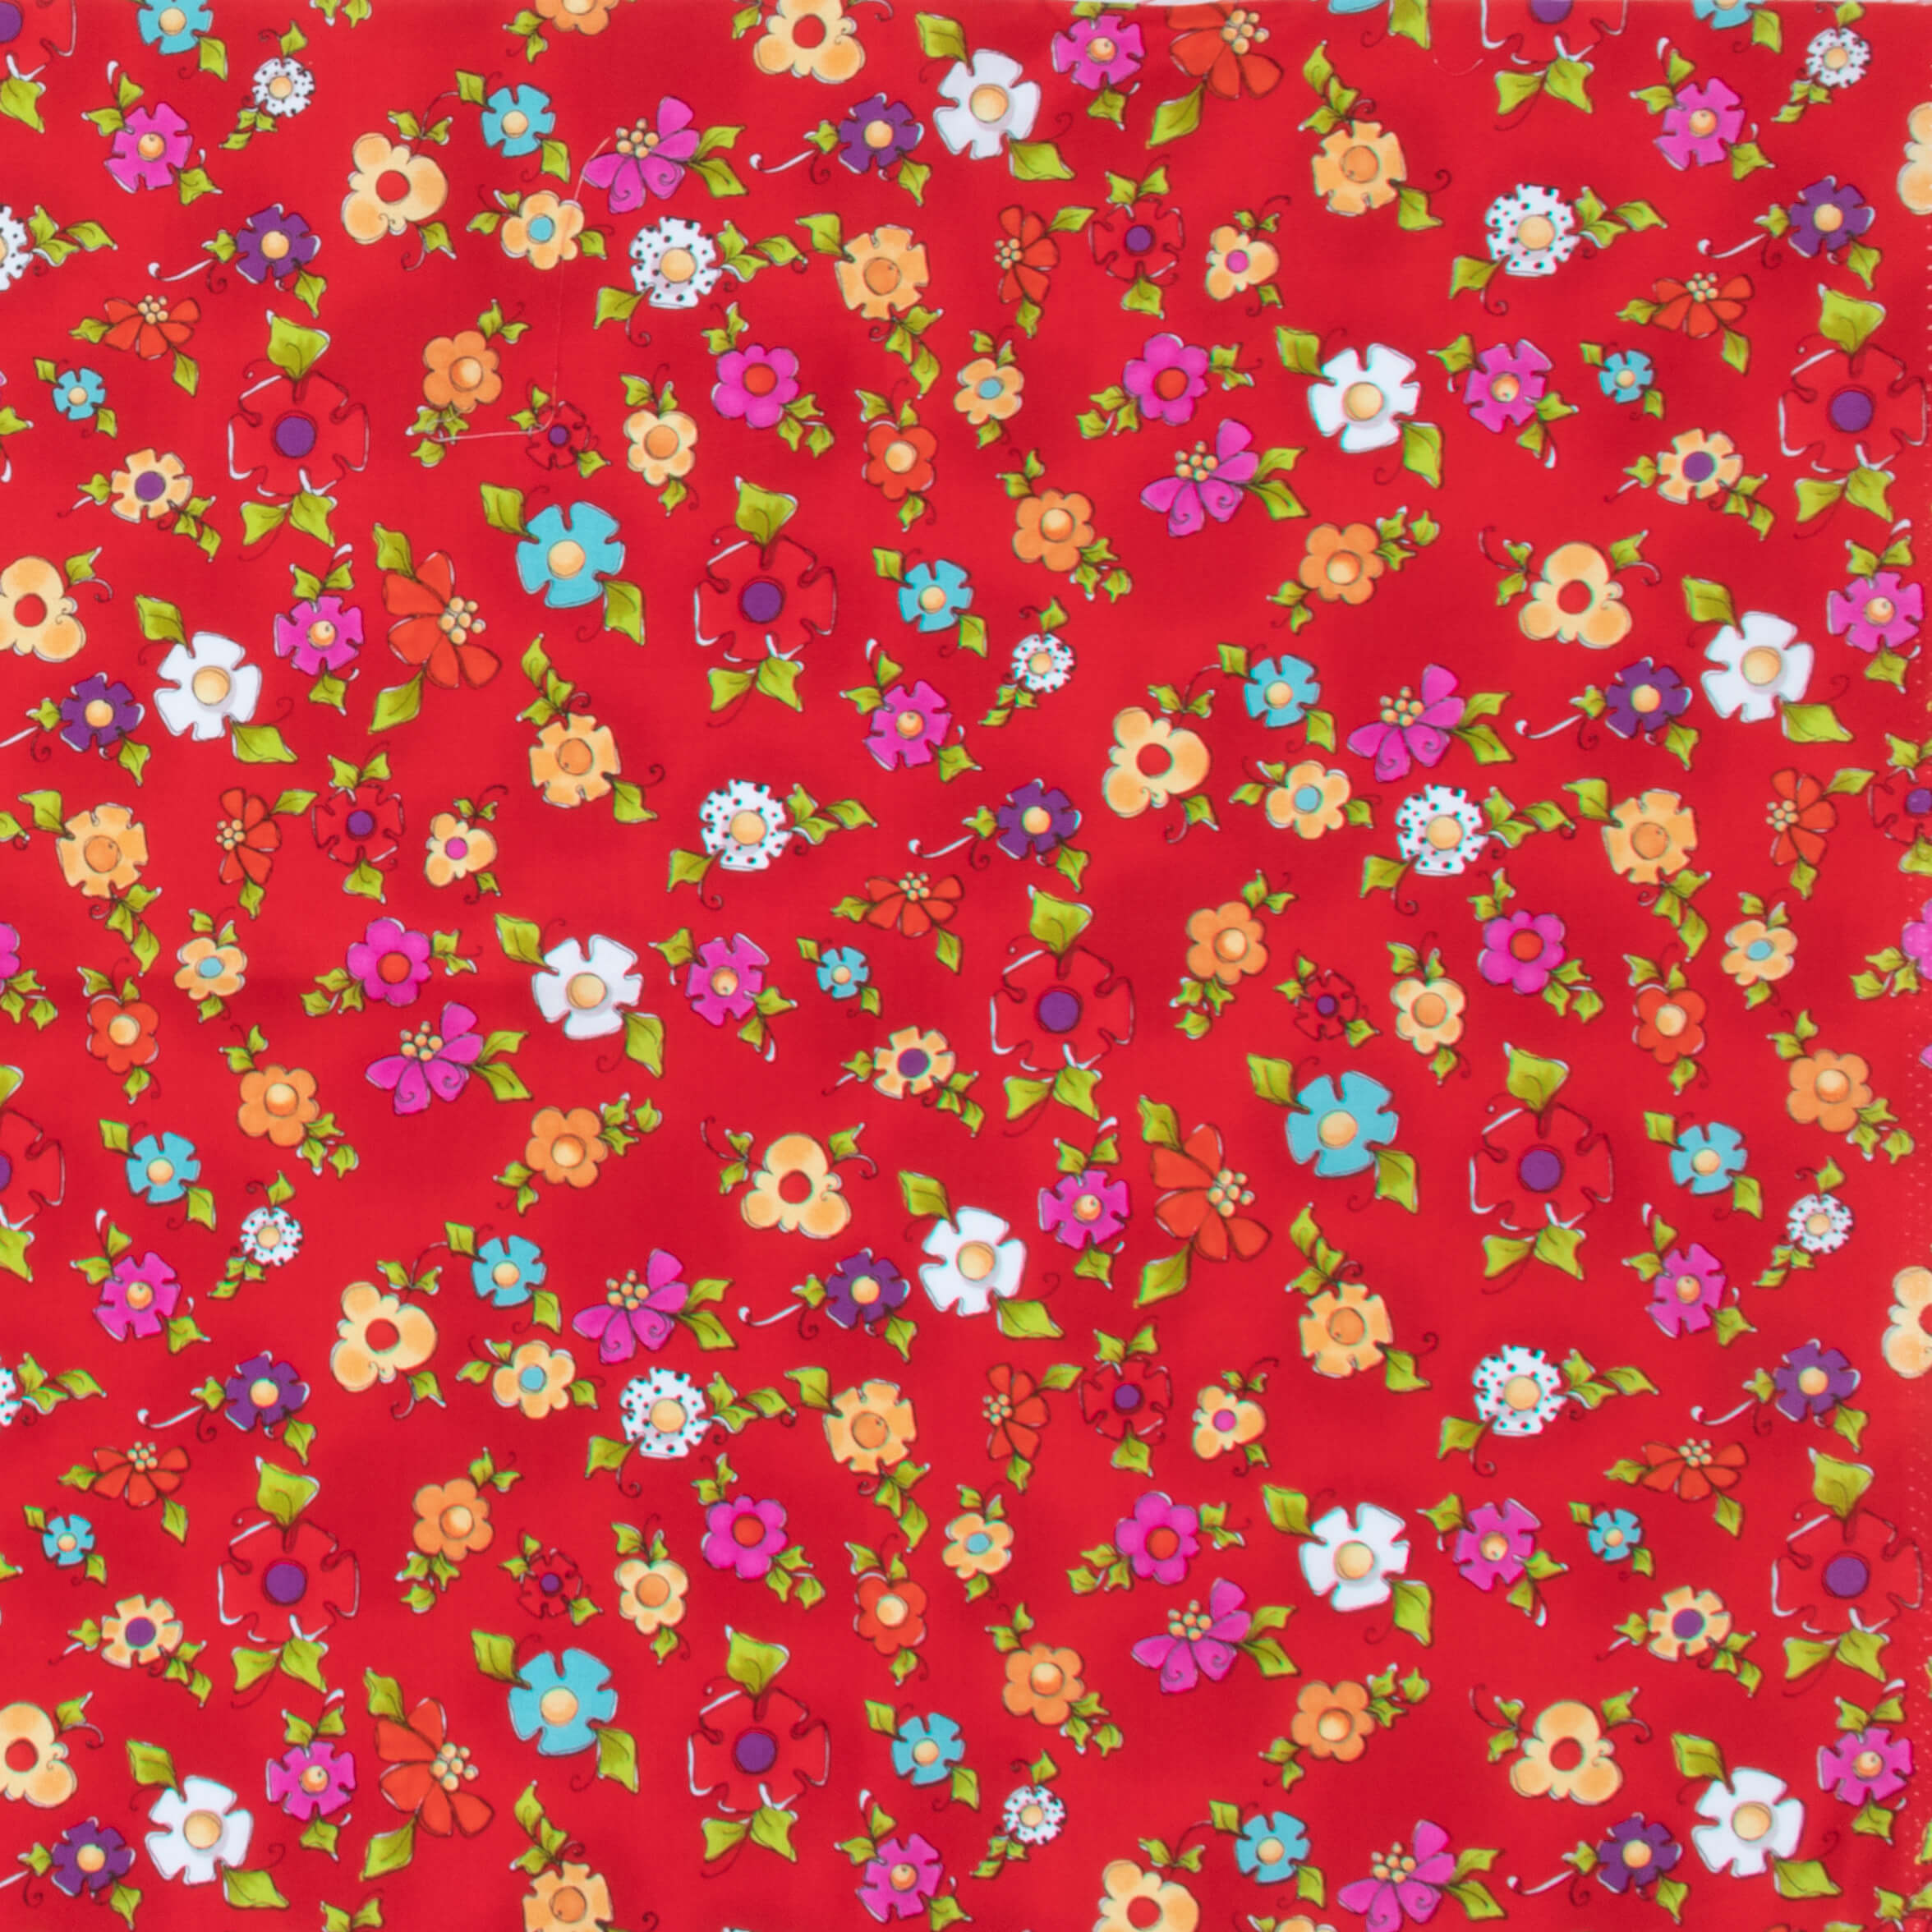 【Loralie Designs】 -Happy Blooms Red Fabric- (ULH-143)